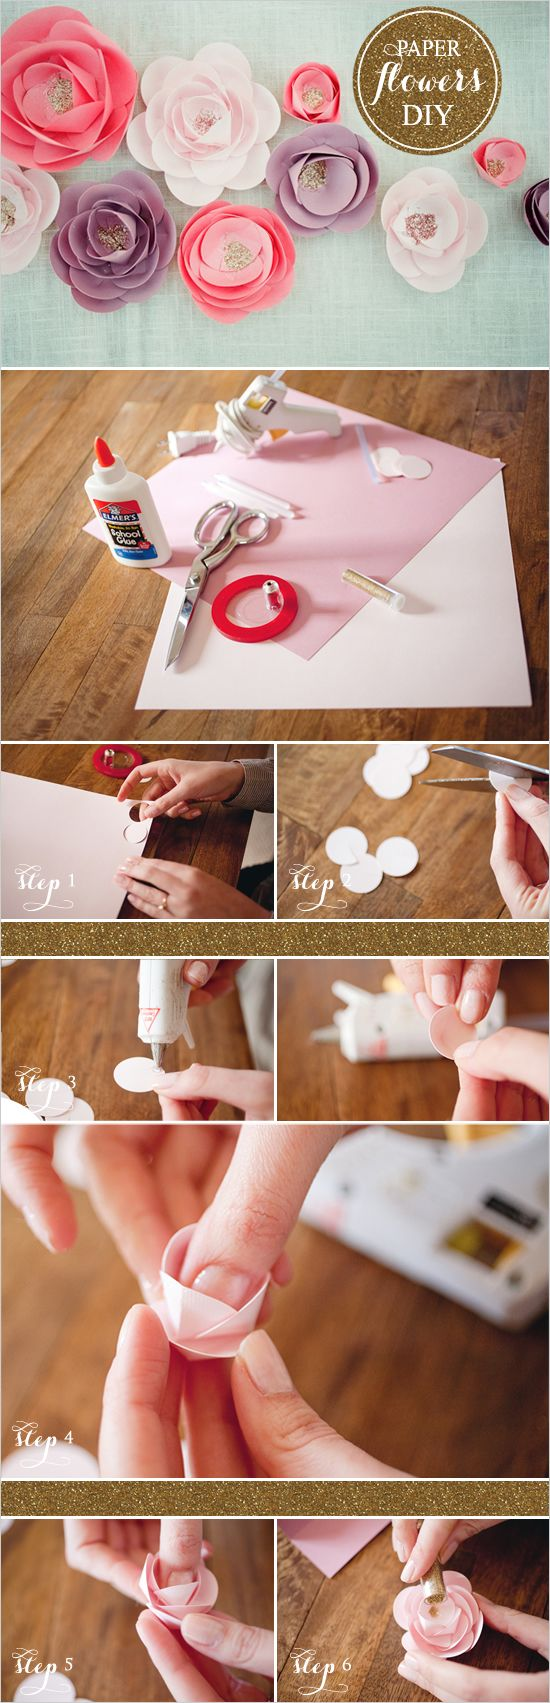 How to Make Paper Flowers: Paper Roses, Flower Tutorials, Diy'S Crafts, Flower Crafts, Paper Flower Tutorial, Diy'S Paper, Crafts Idea, Make Paper, Paper Crafts